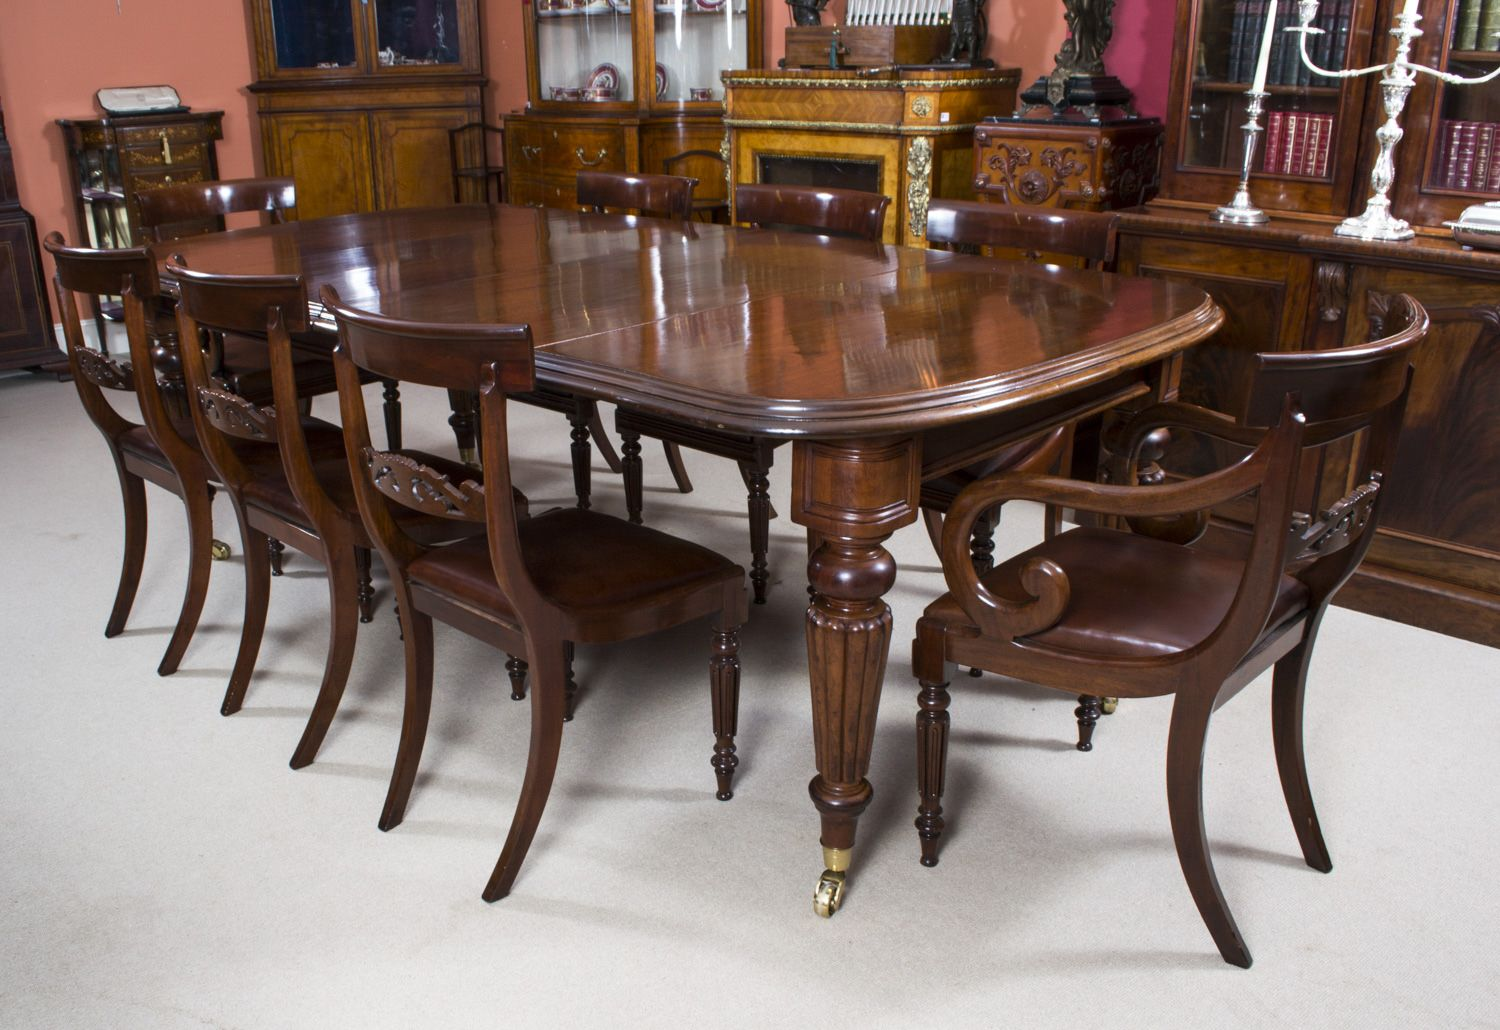 Antique Victorian Mahogany Dining Table 8 Regency Chairs Dining Table Design Modern Regency Dining Room Mahogany Dining Table